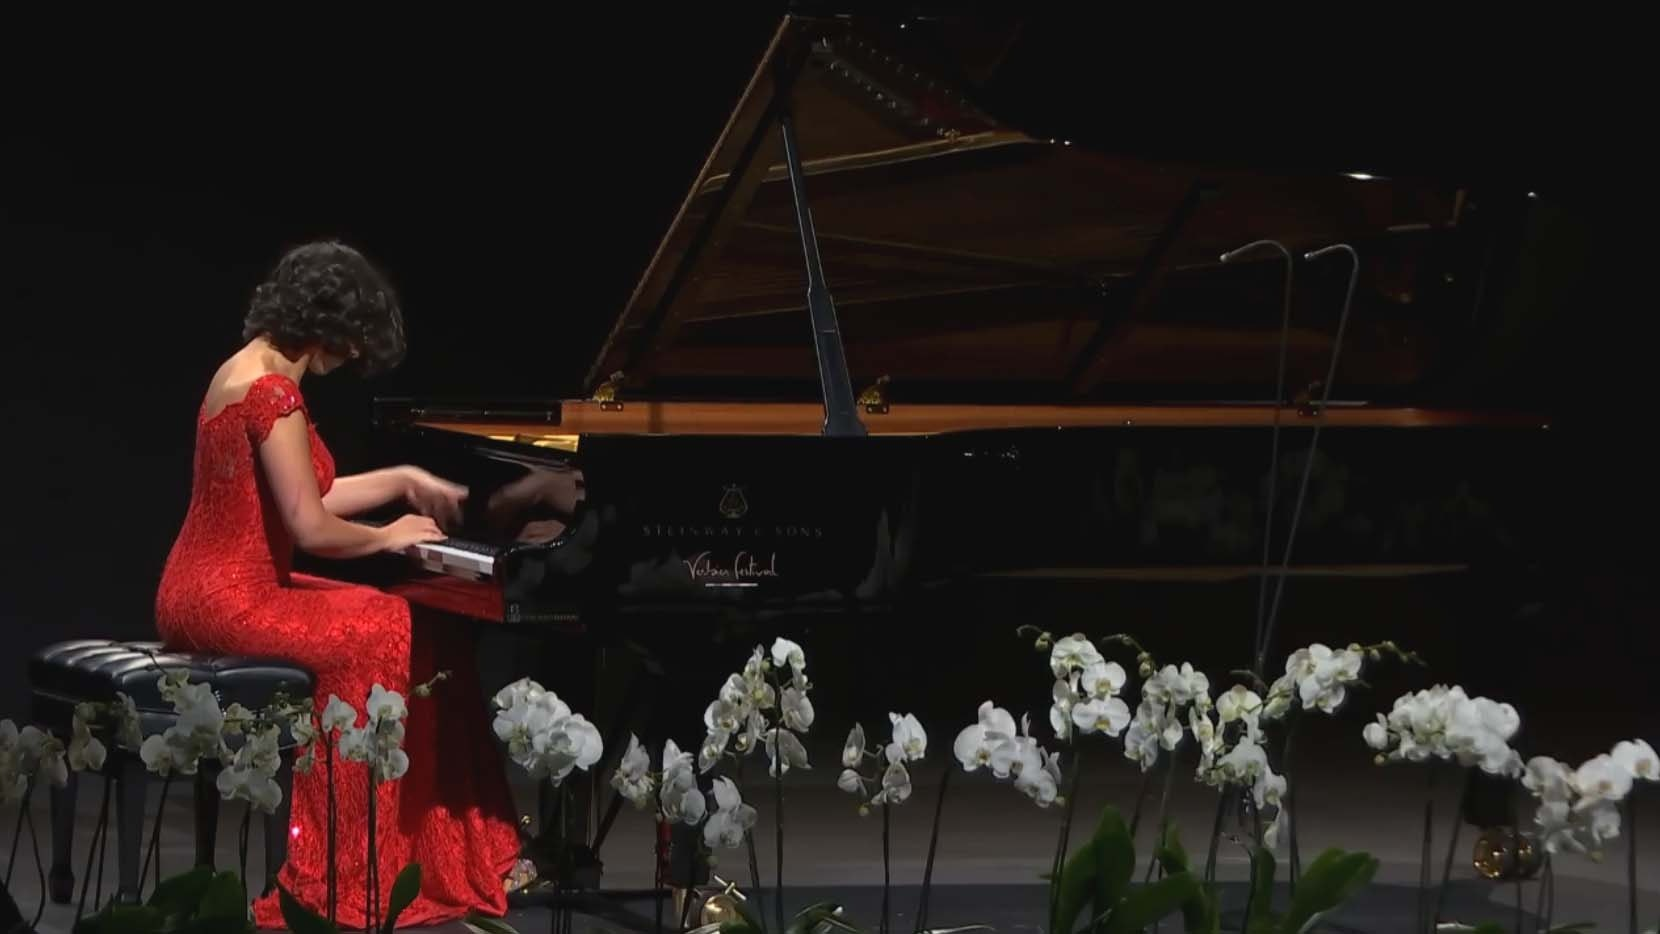 Khatia Buniatishvili performs Ravel, Liszt and Stravinsky